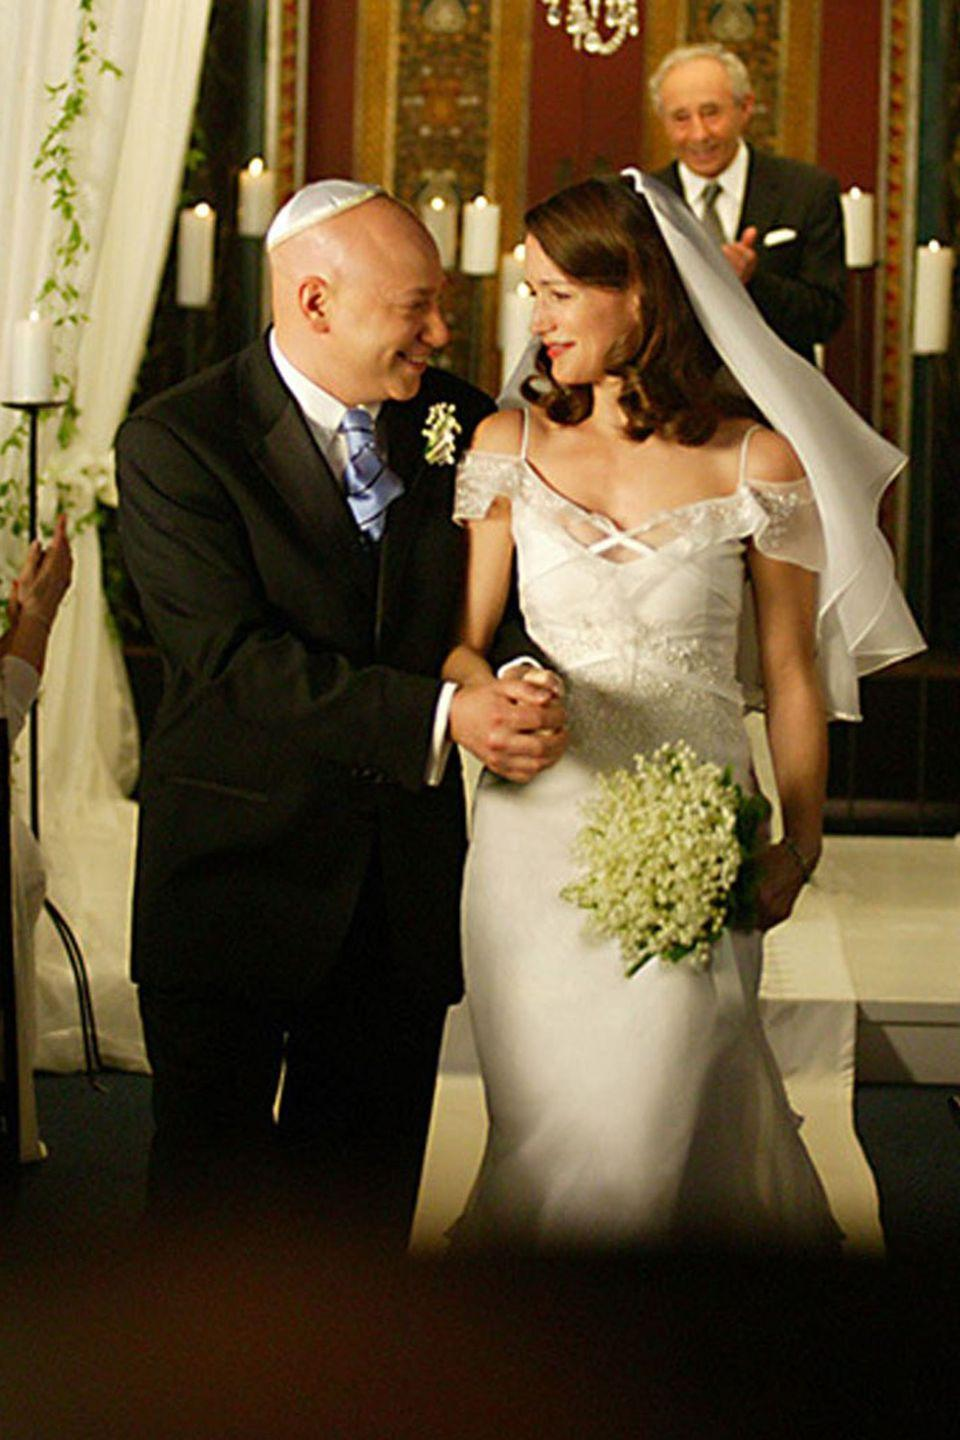 <p>In a twist of irony, in season 6<strong>, </strong>Charlotte ended up marrying Harry Goldenblatt, the lawyer who handled her divorce from her first husband, Trey MacDougal. She wore a cold-shoulder gown (very on-trend, even now) with ribbons criss-crossing the bodice. She topped the look with a veil tucked into the back of her curls. </p>